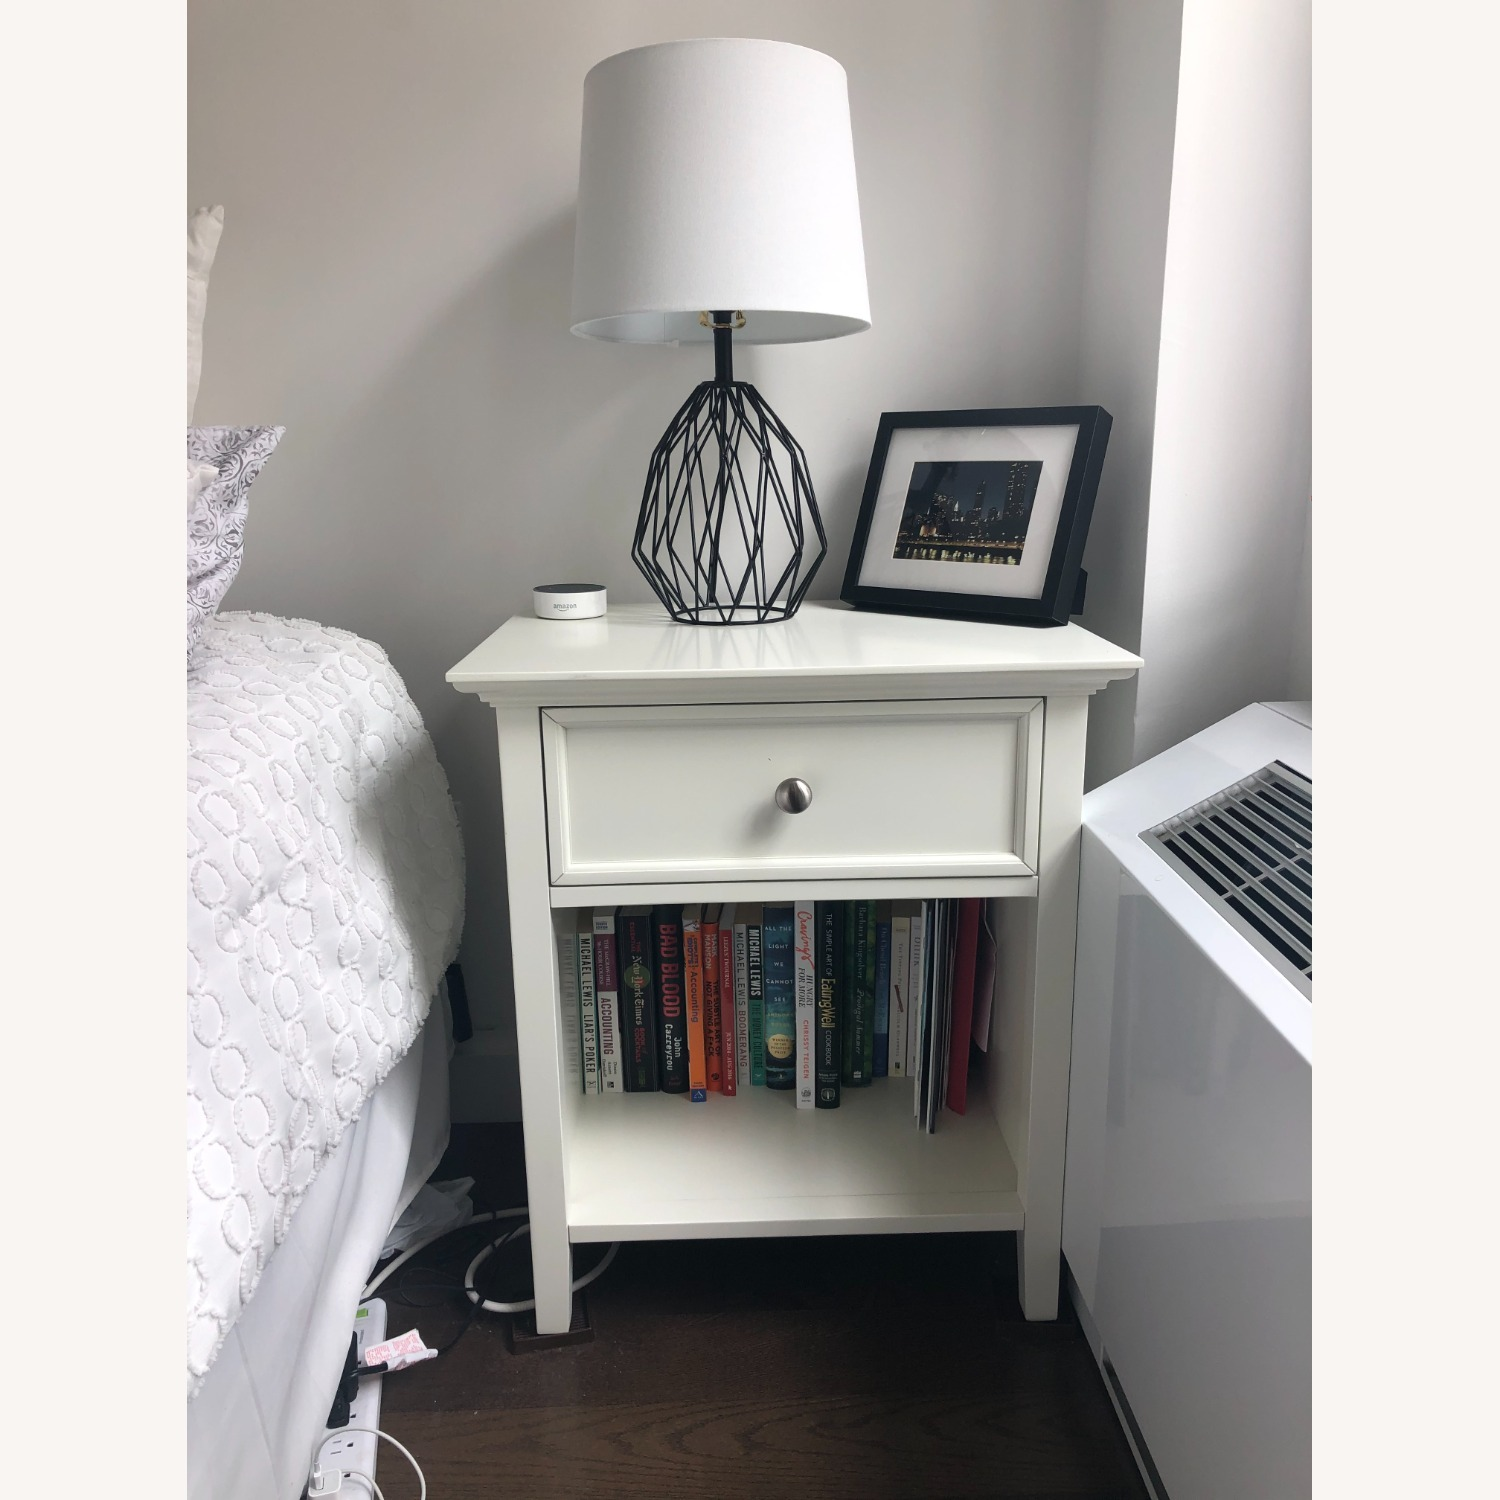 Mealey's Furniture White Wood End Table set (2) - image-3